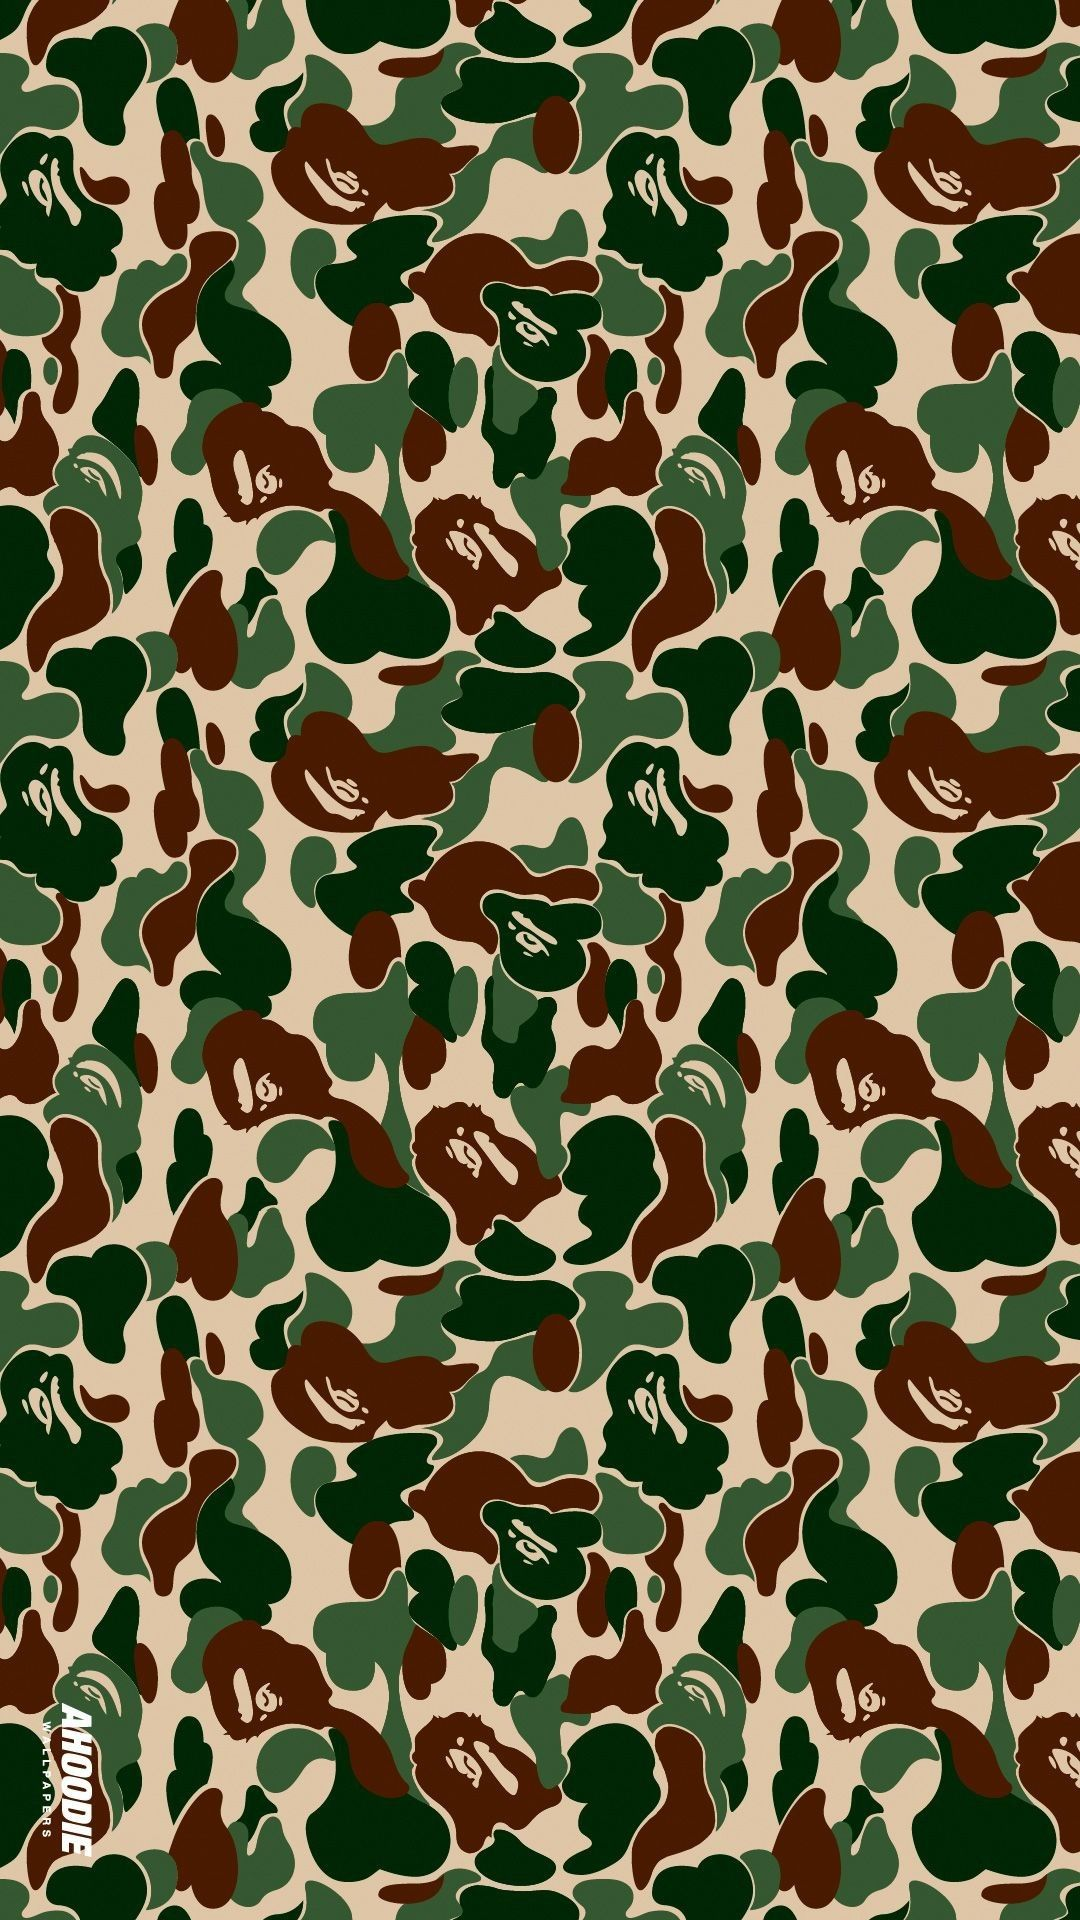 Bape Blue Picture in 2020 Camo wallpaper, Android